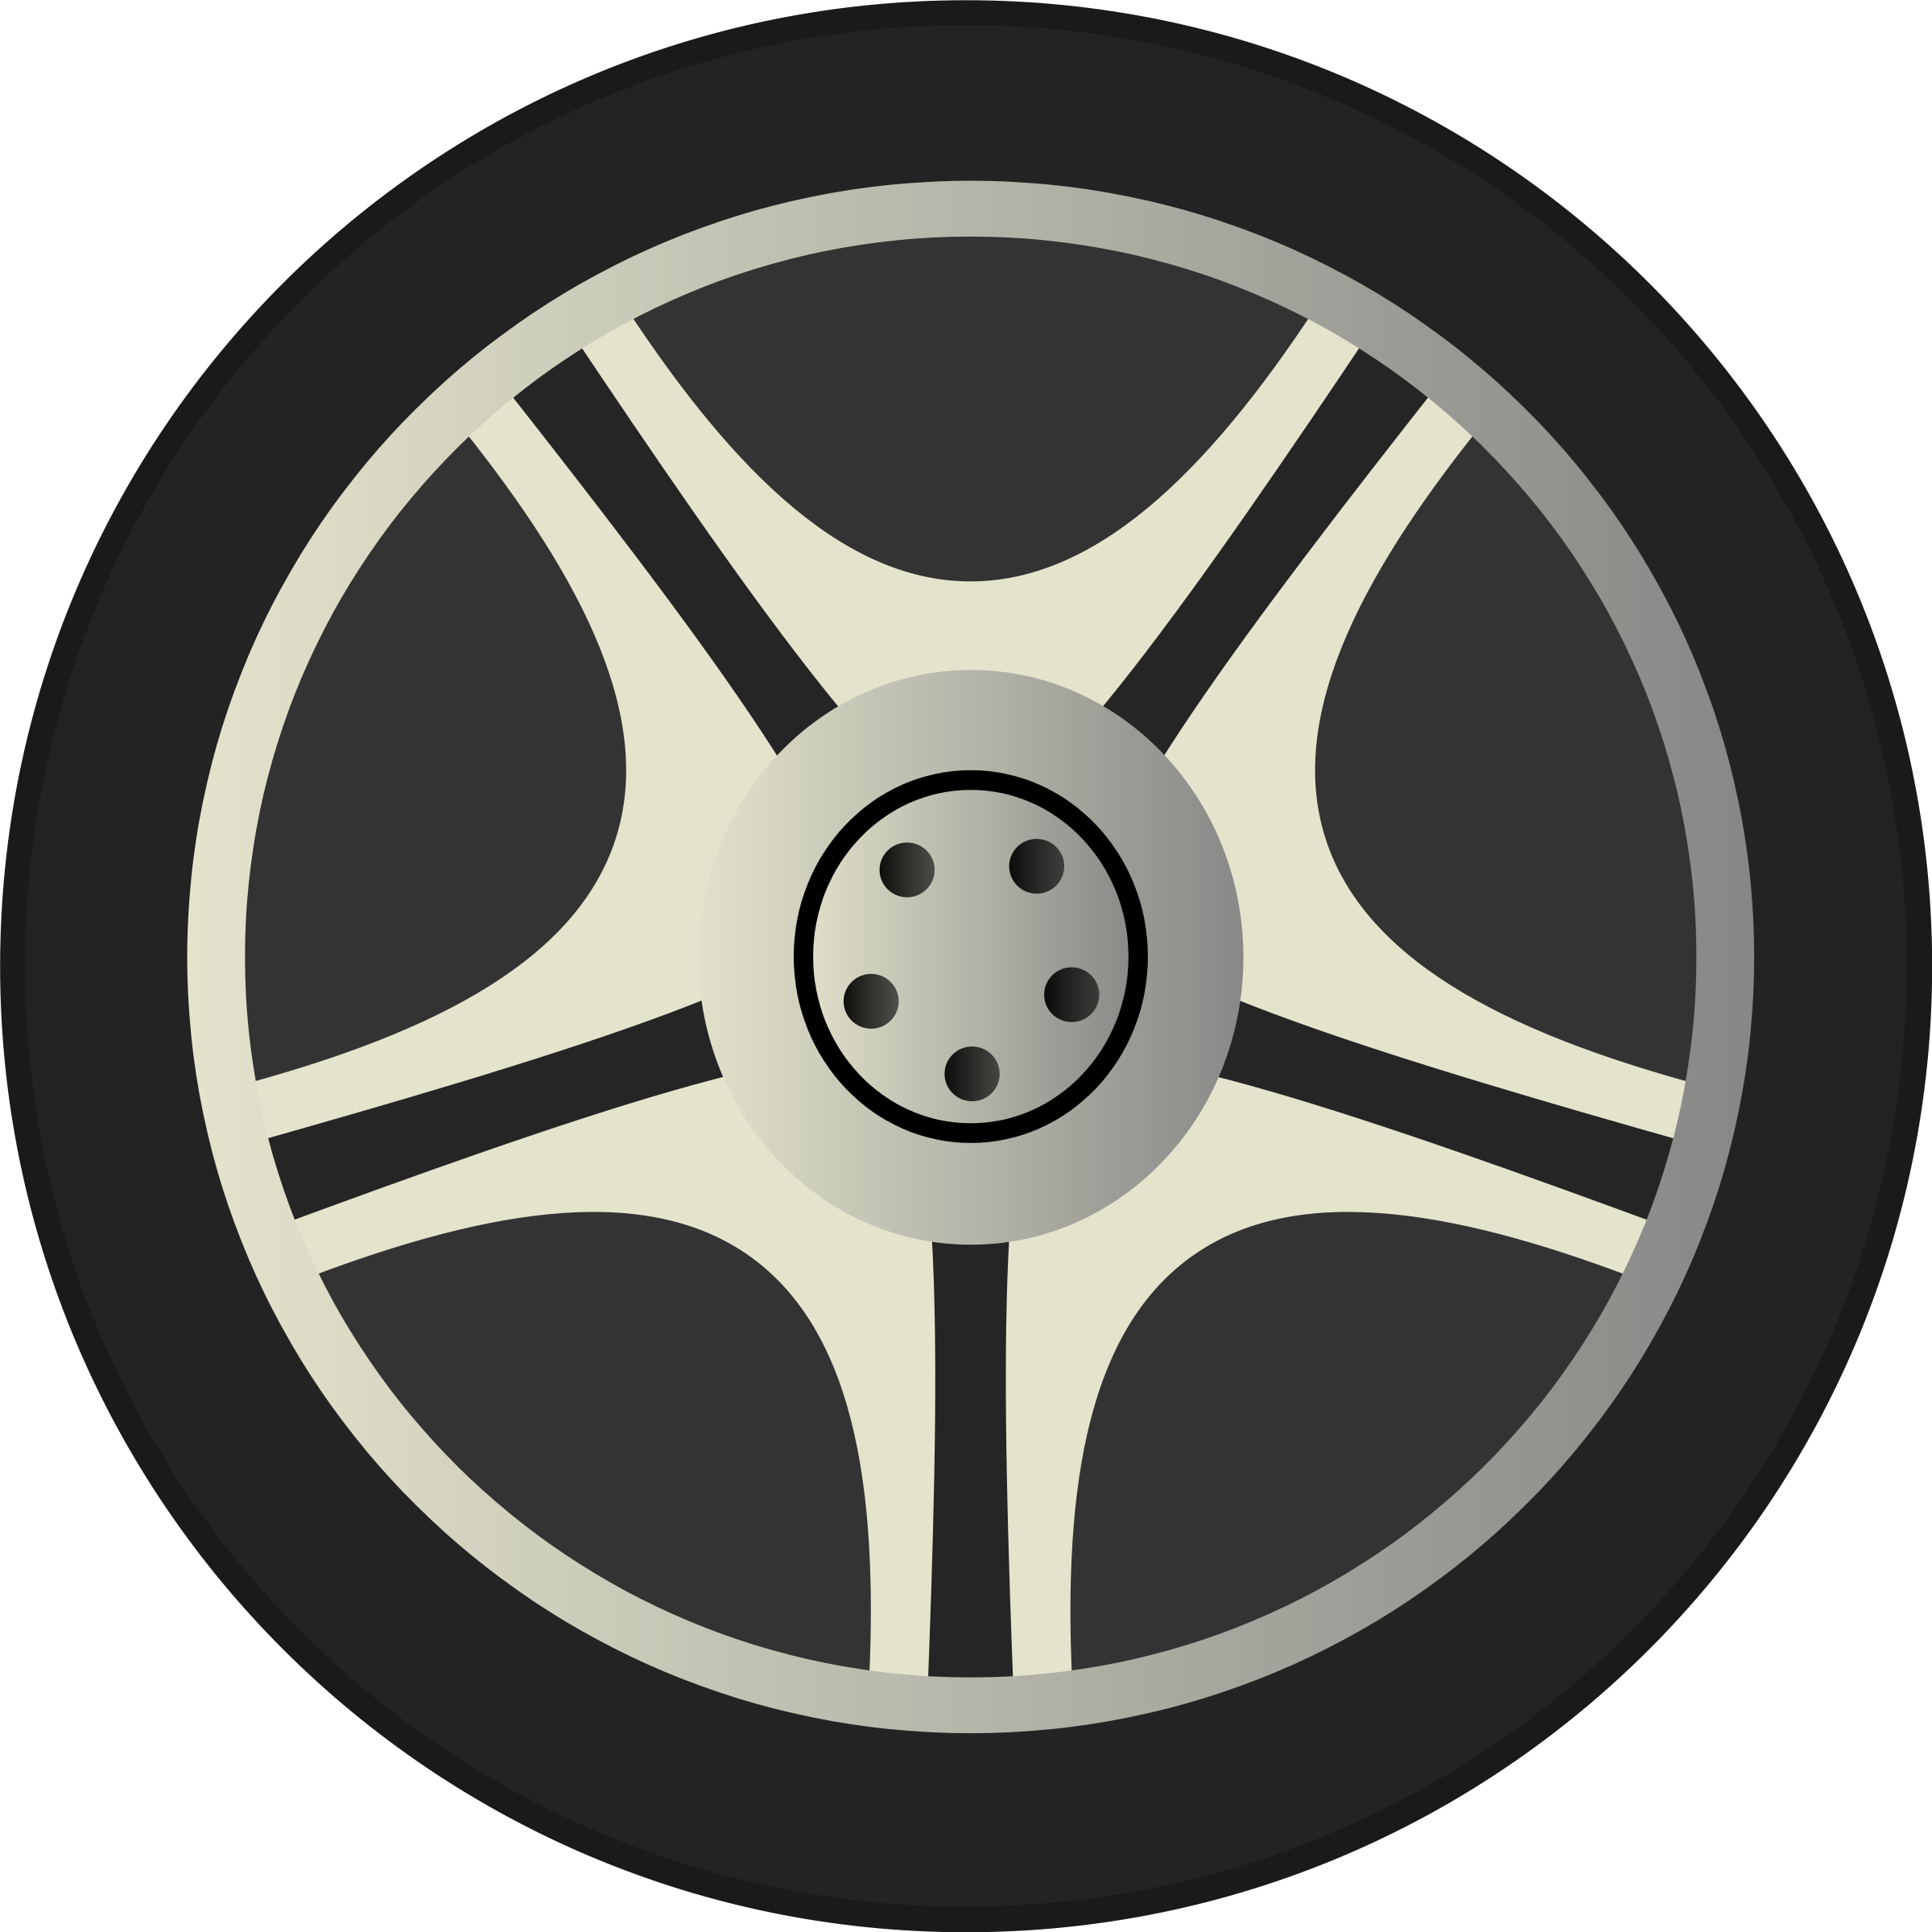 Drawing wheels animated car. Collection of without